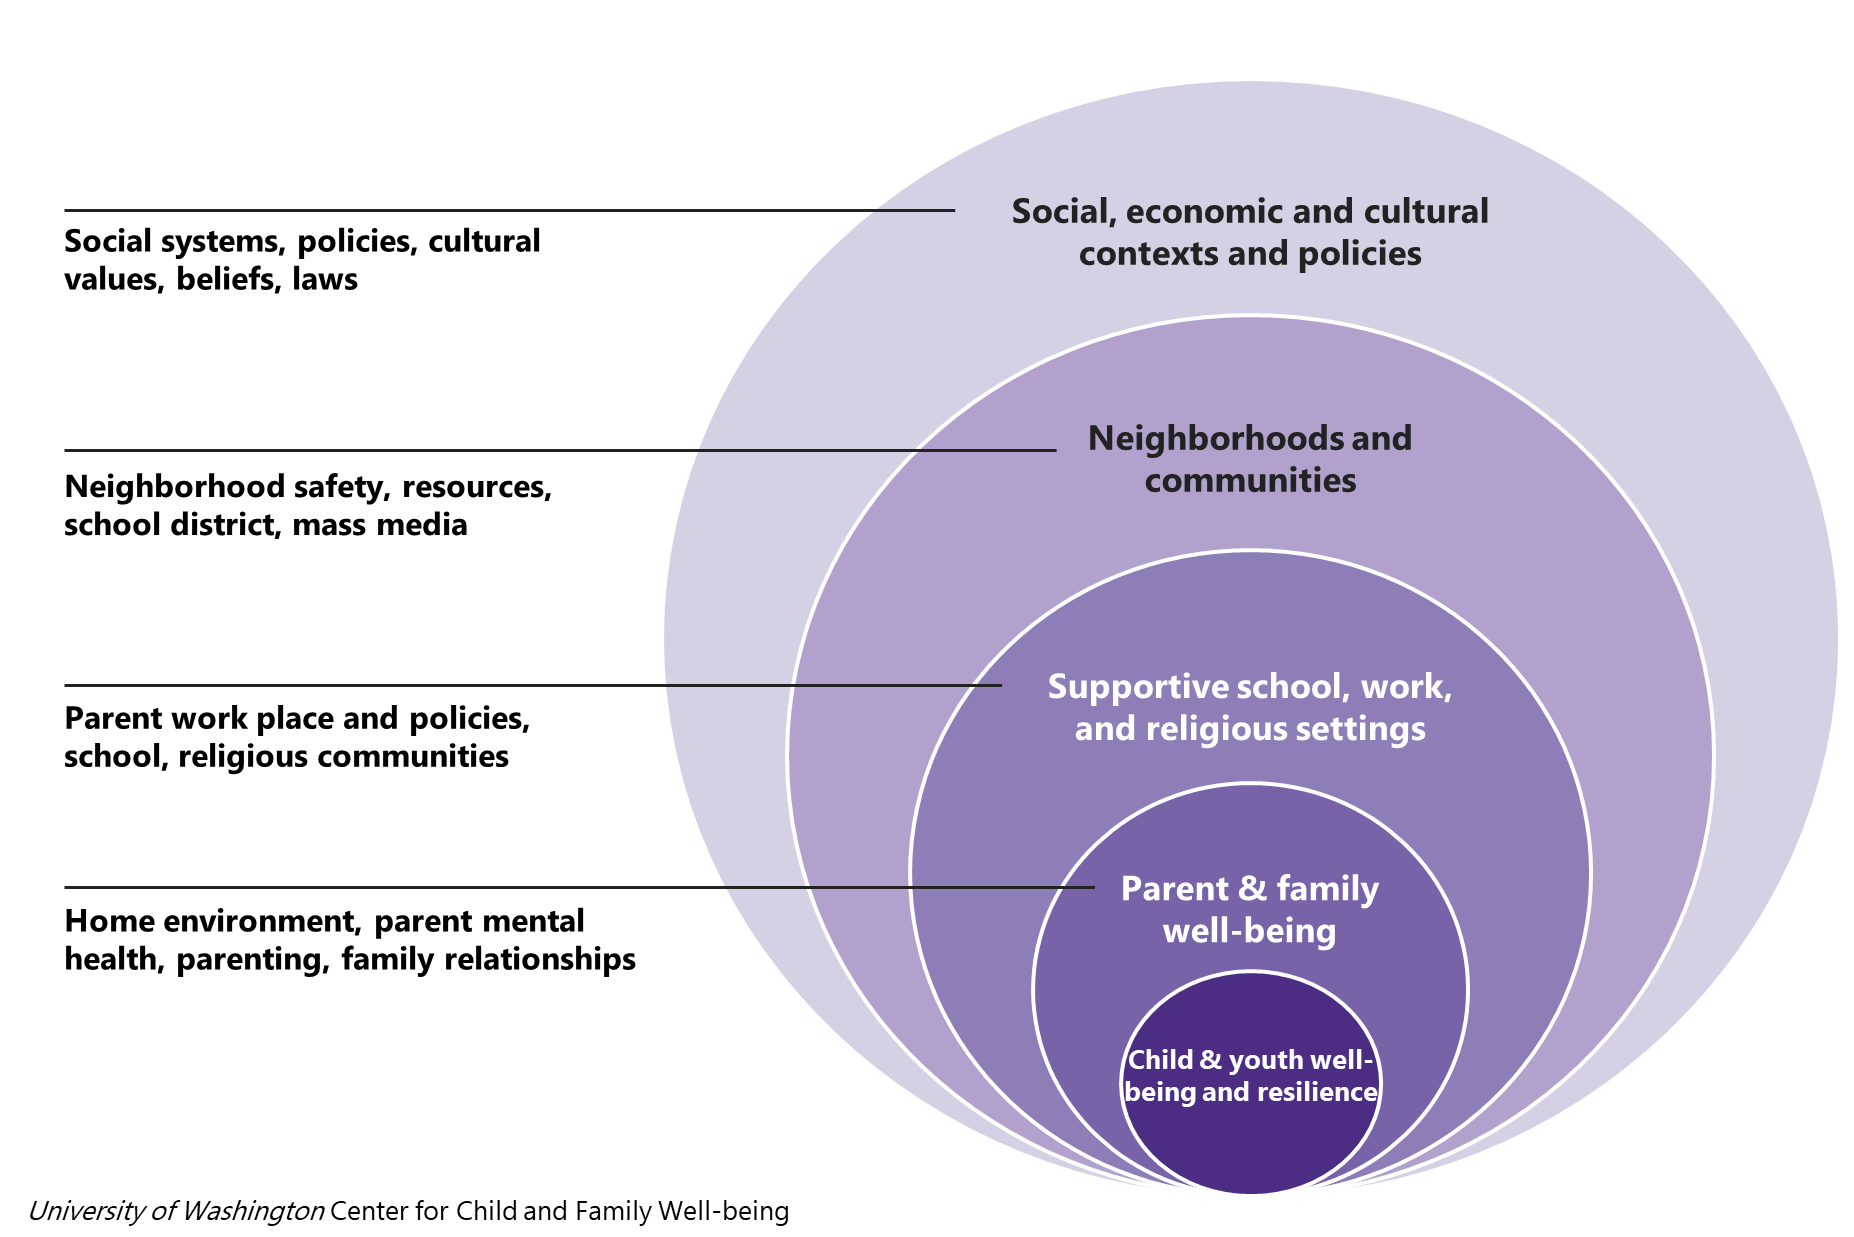 Bioecological Model of Child Well-being